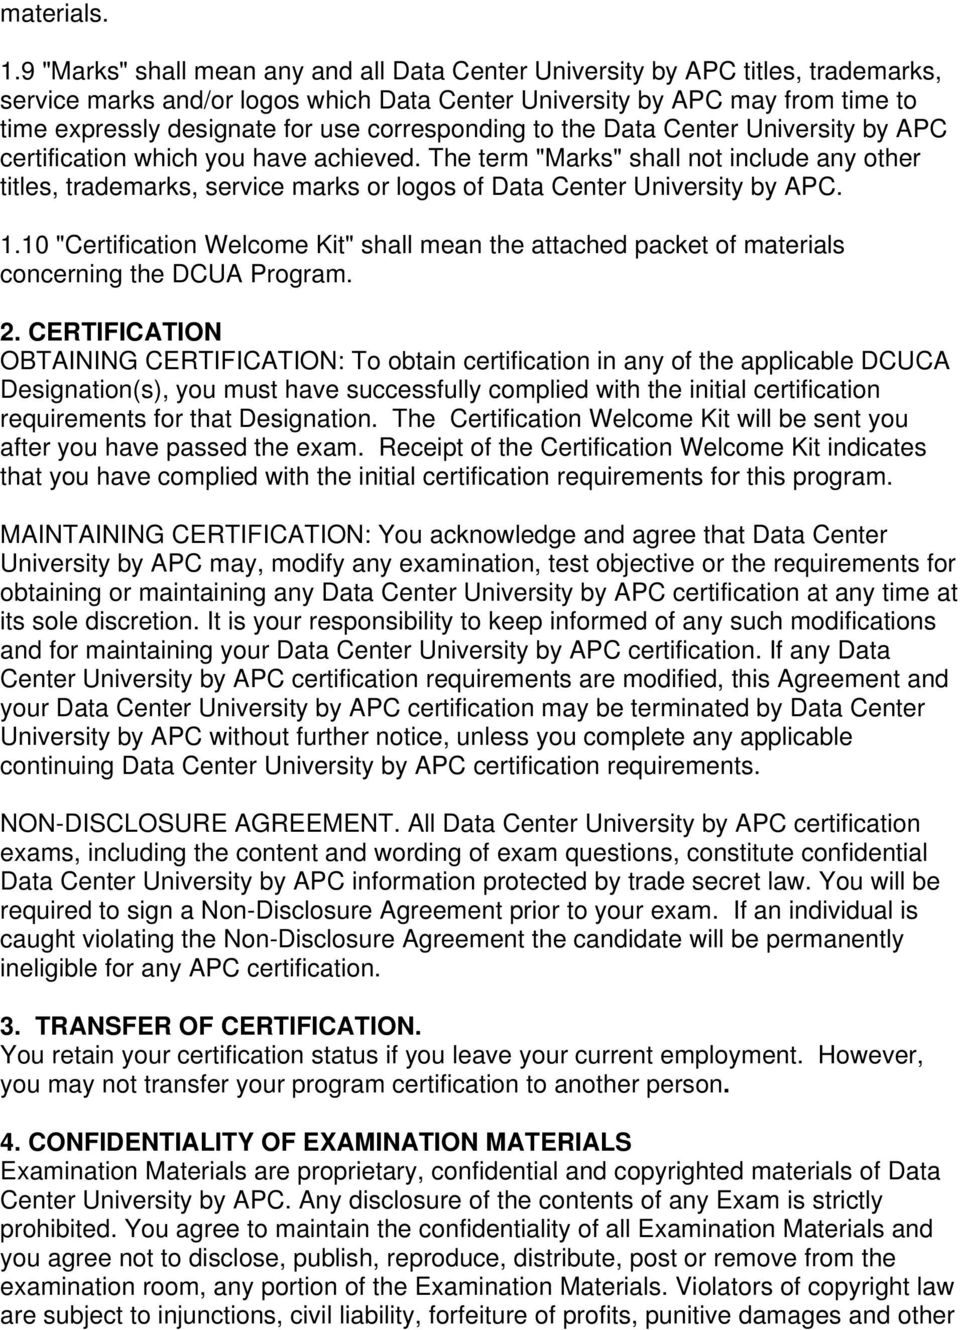 corresponding to the Data Center University by APC certification which you have achieved.